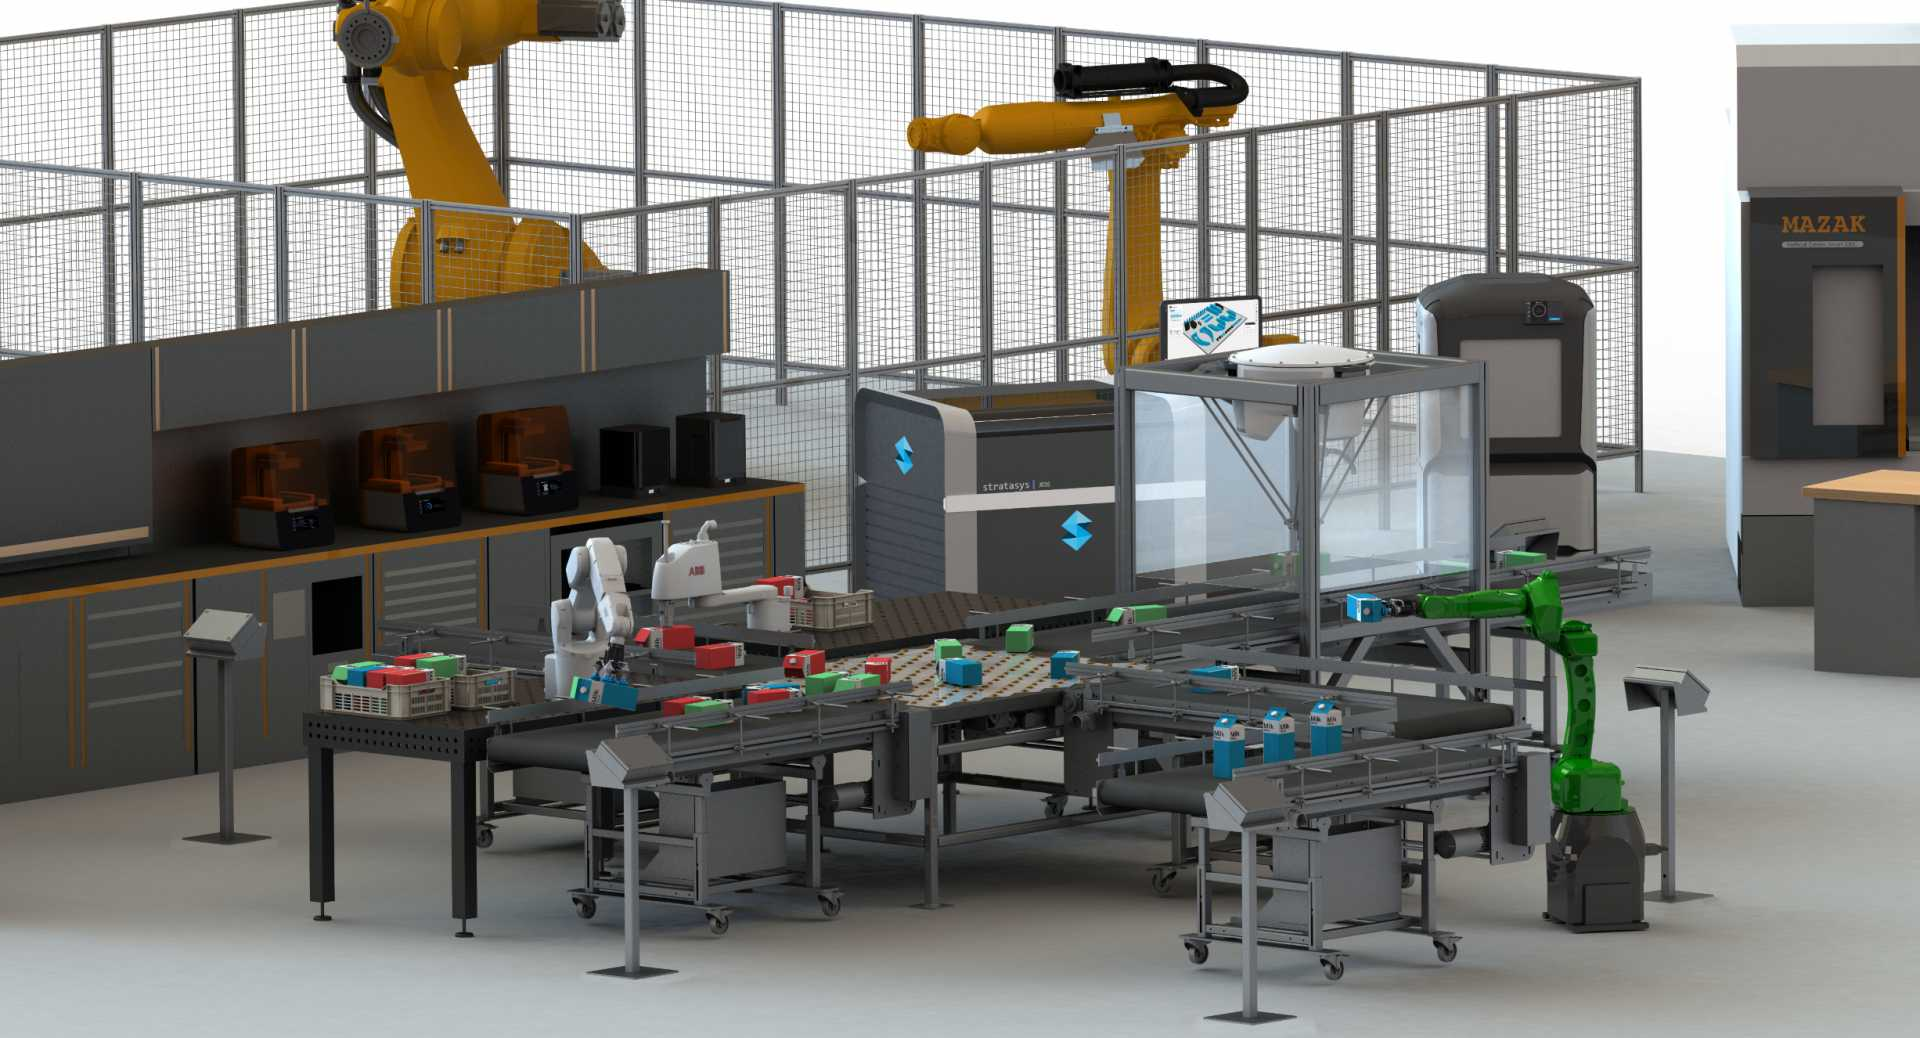 The Sustainability Centre will have a central demonstrator based on a conveyor system, which will be linked together with cobots, AGVs and other advanced technologies. Image: AMRC Cymru